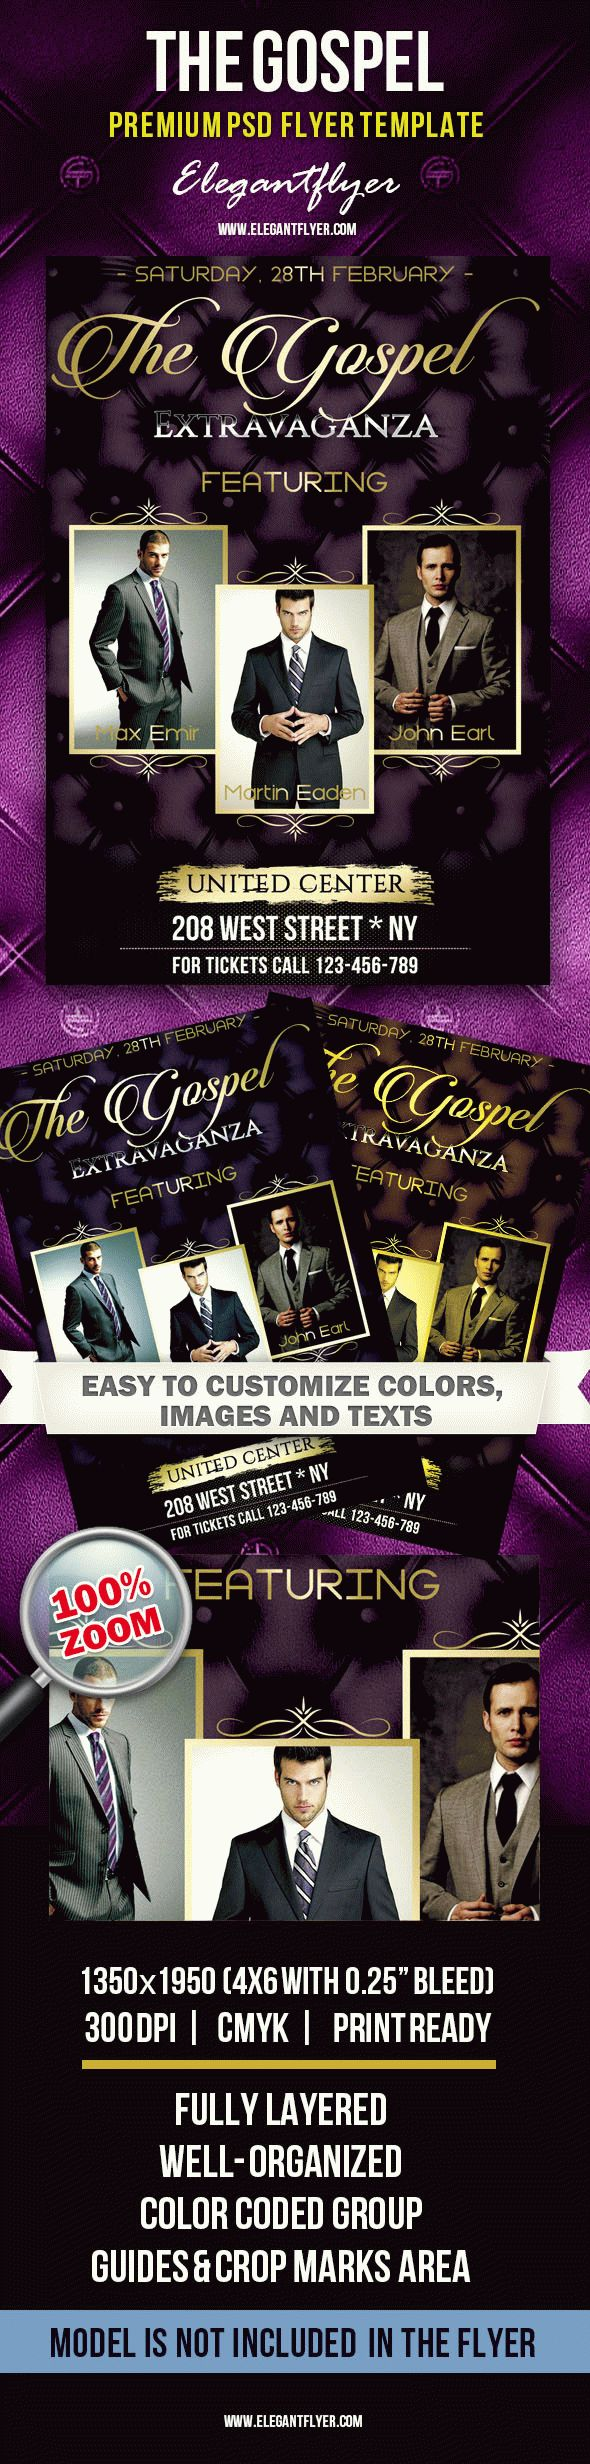 The Gospel – Premium Club flyer PSD Template